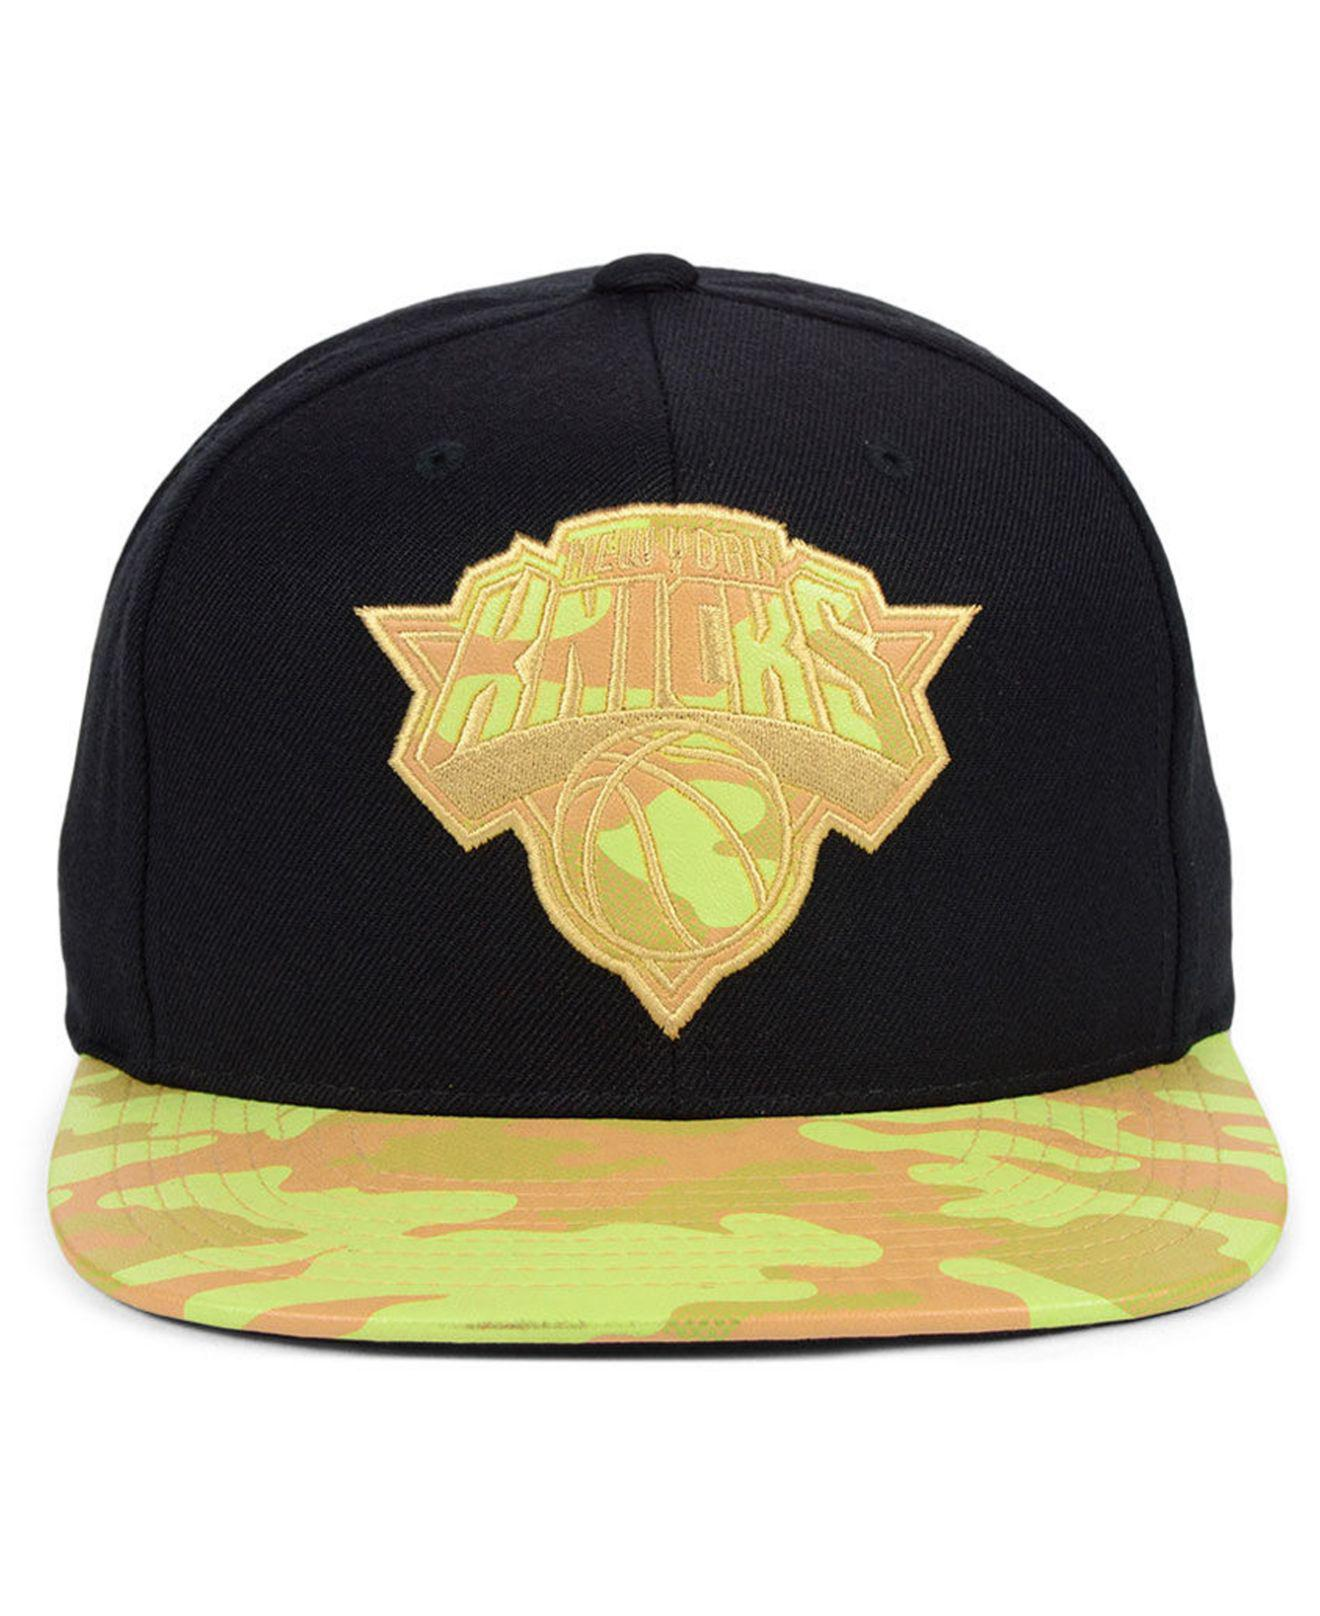 cheap for discount 7c5c5 4e7b3 Lyst - Mitchell   Ness New York Knicks Natural Camo Snapback Cap in Black  for Men